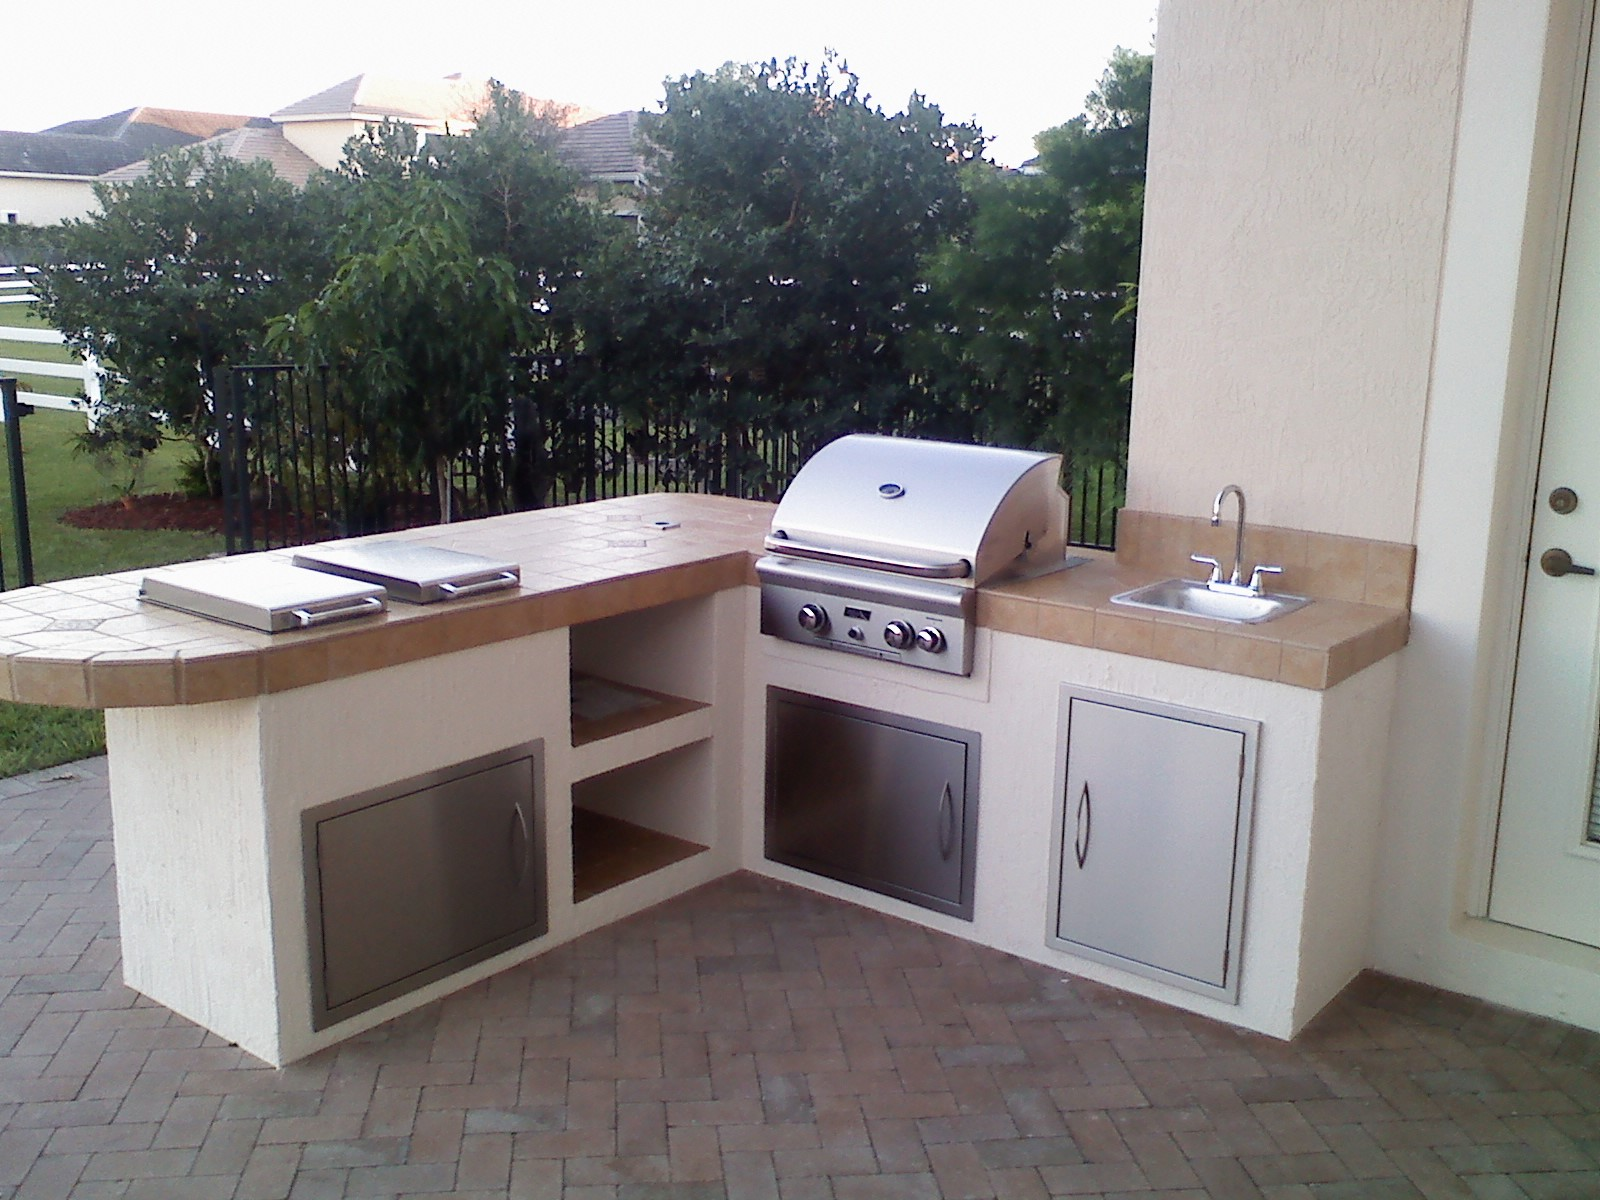 superb Drop In Grills For Outdoor Kitchens #10: Outdoor BBQ Grill Designs